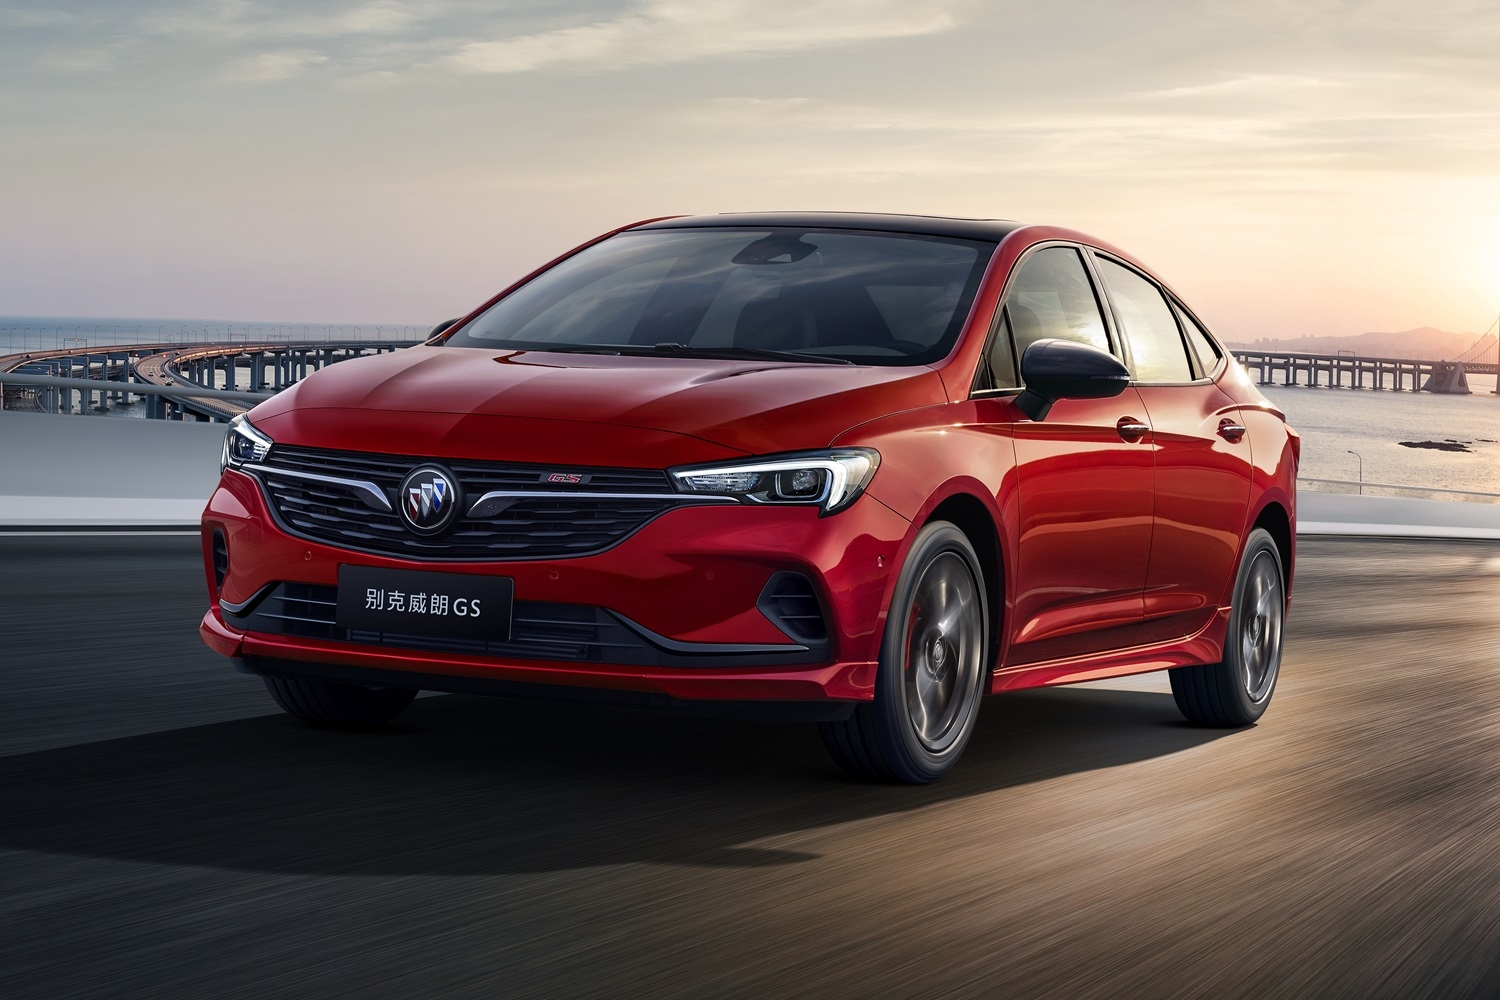 New 2021 Buick Verano Gs Launches In China | Gm Authority What Does A 2021 Buick Verano Look Like